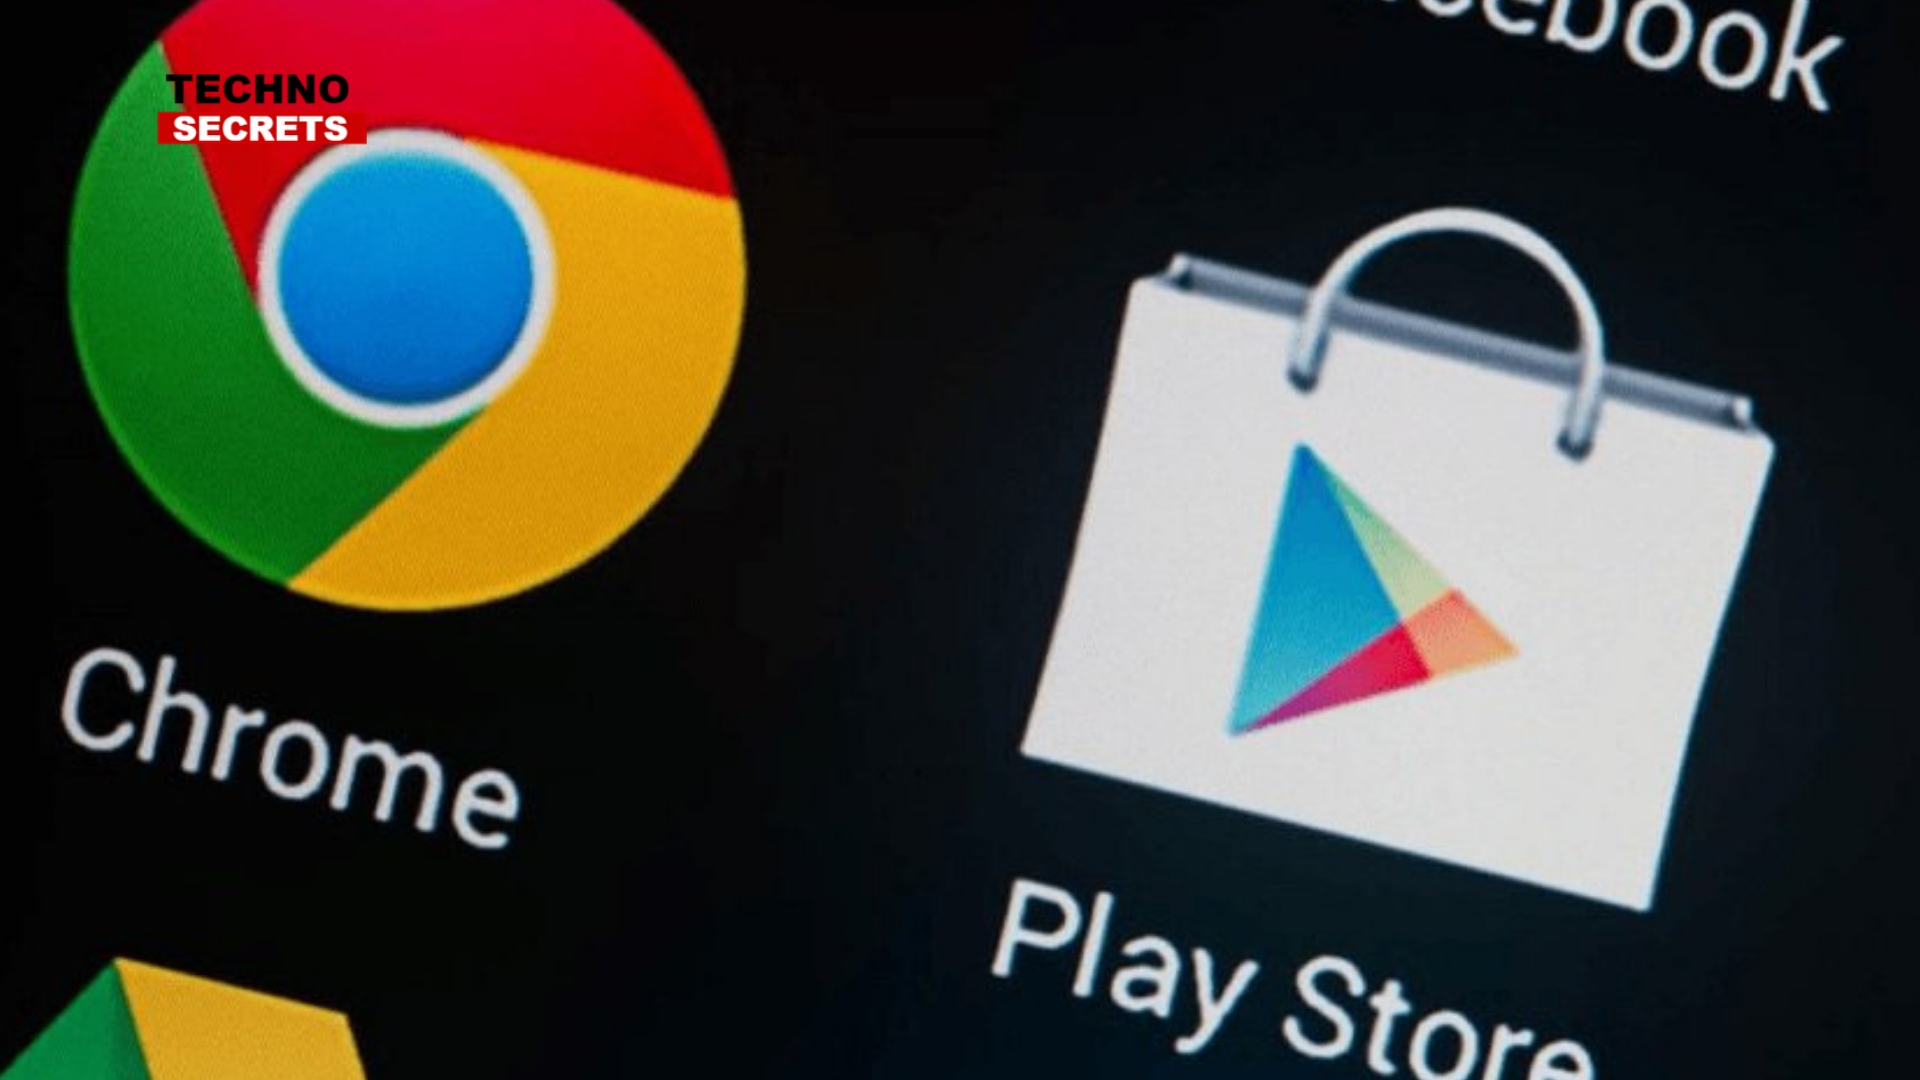 Google Testing a Budgeting Feature to Help Know App Spending